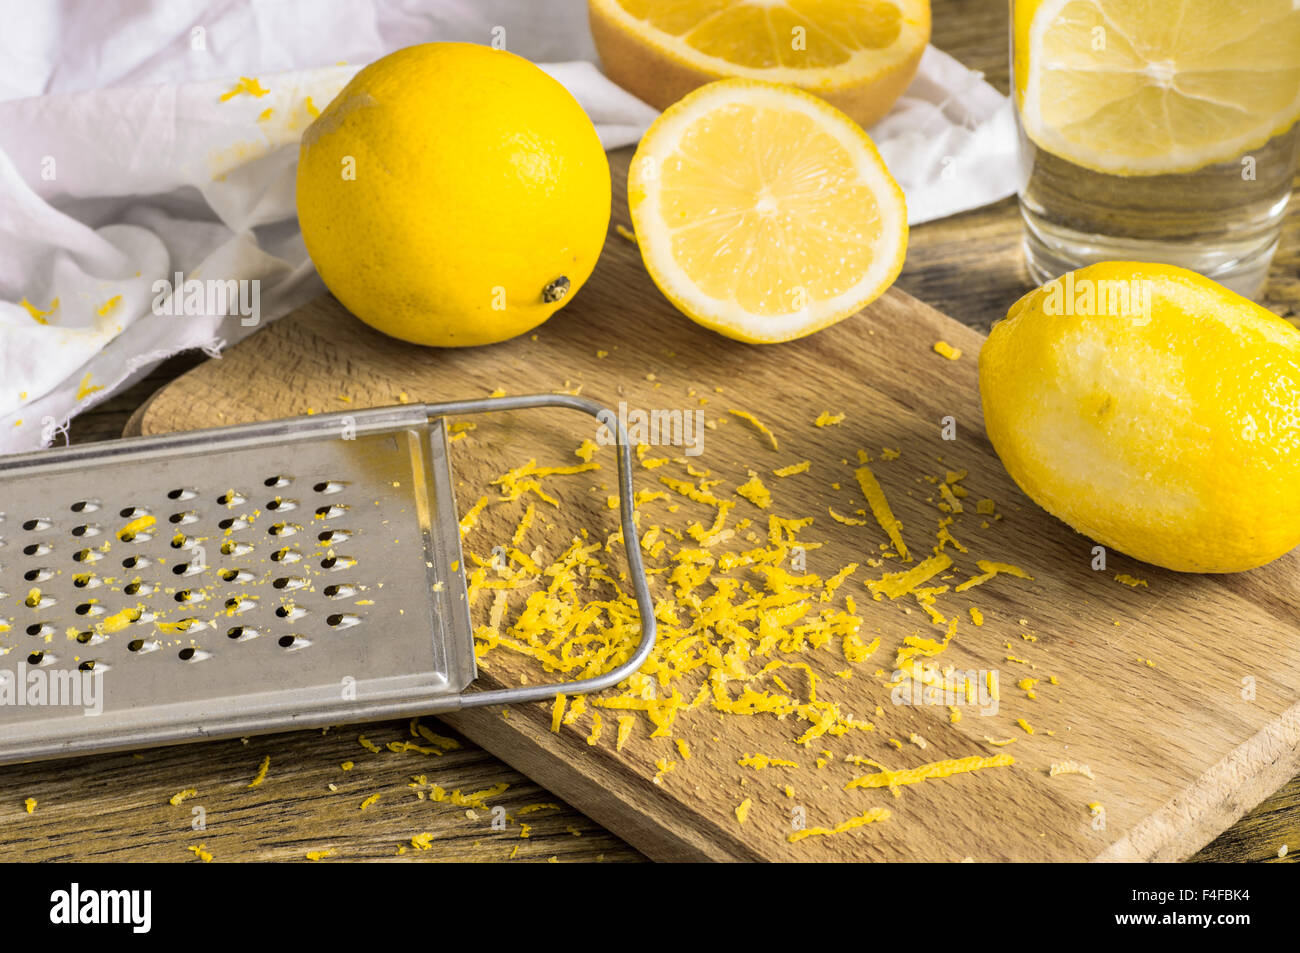 Grater peel and lemon zest on the wooden table - Stock Image